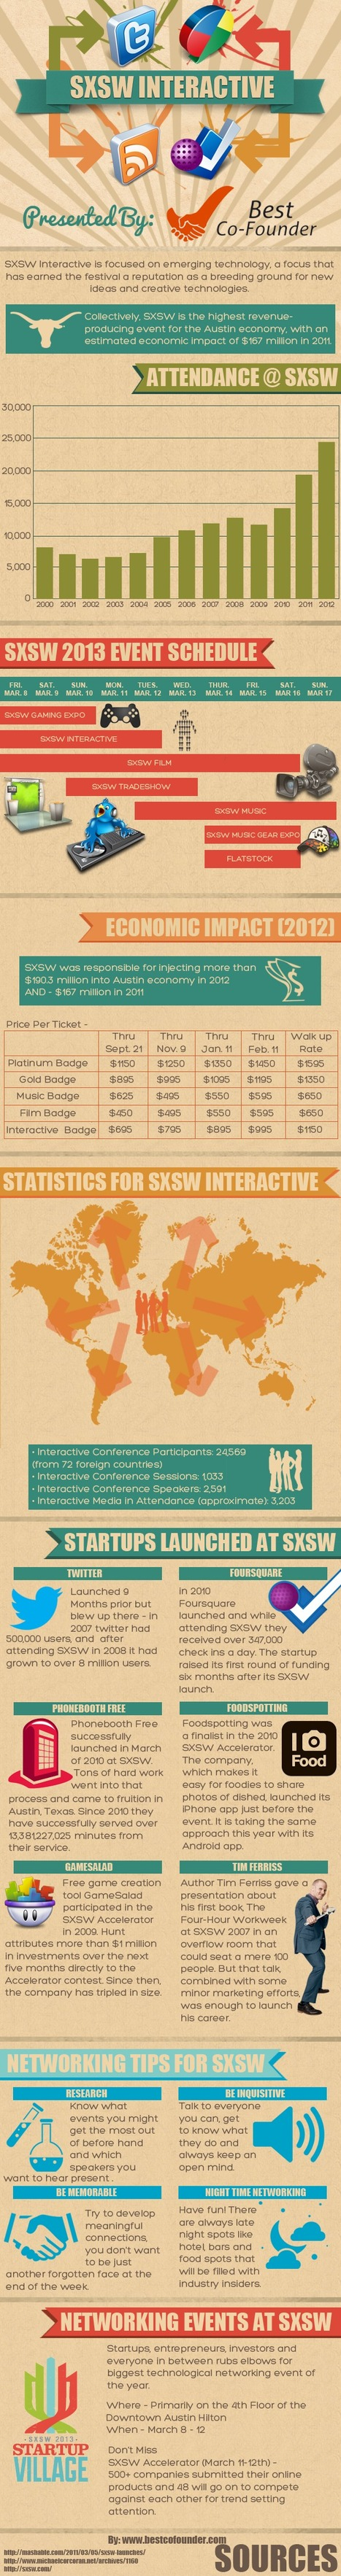 Who Will Be The 'Twitter' Of SXSW 2013? [INFOGRAPHIC] - AllTwitter | Better know and better use Social Media today (facebook, twitter...) | Scoop.it